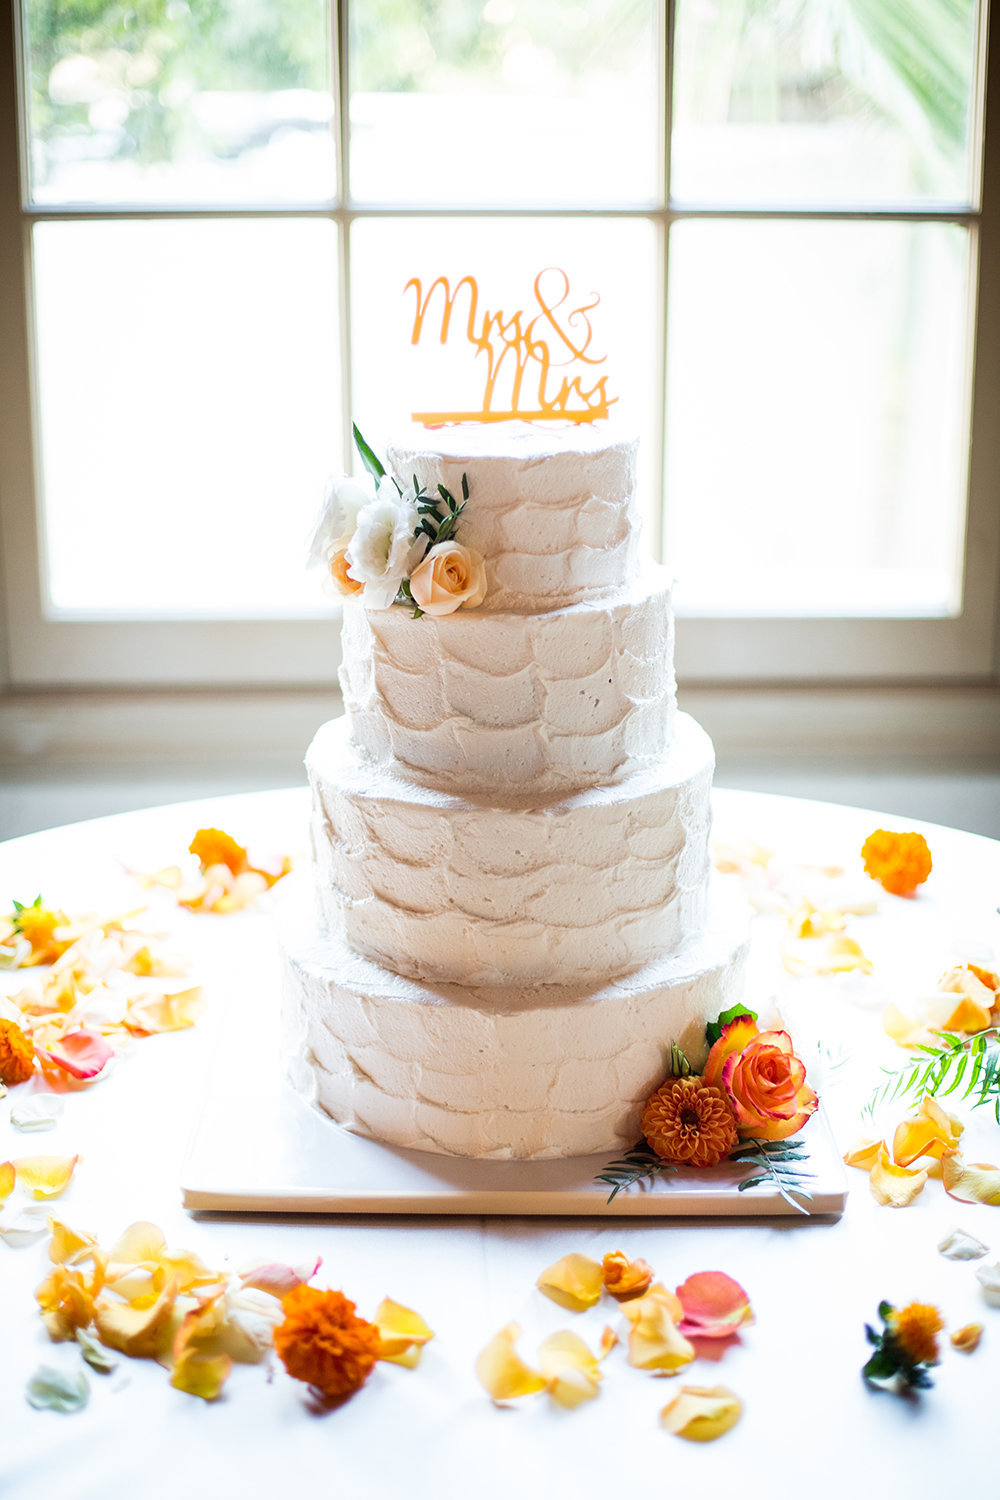 Bright flowers adorn this wedding cake